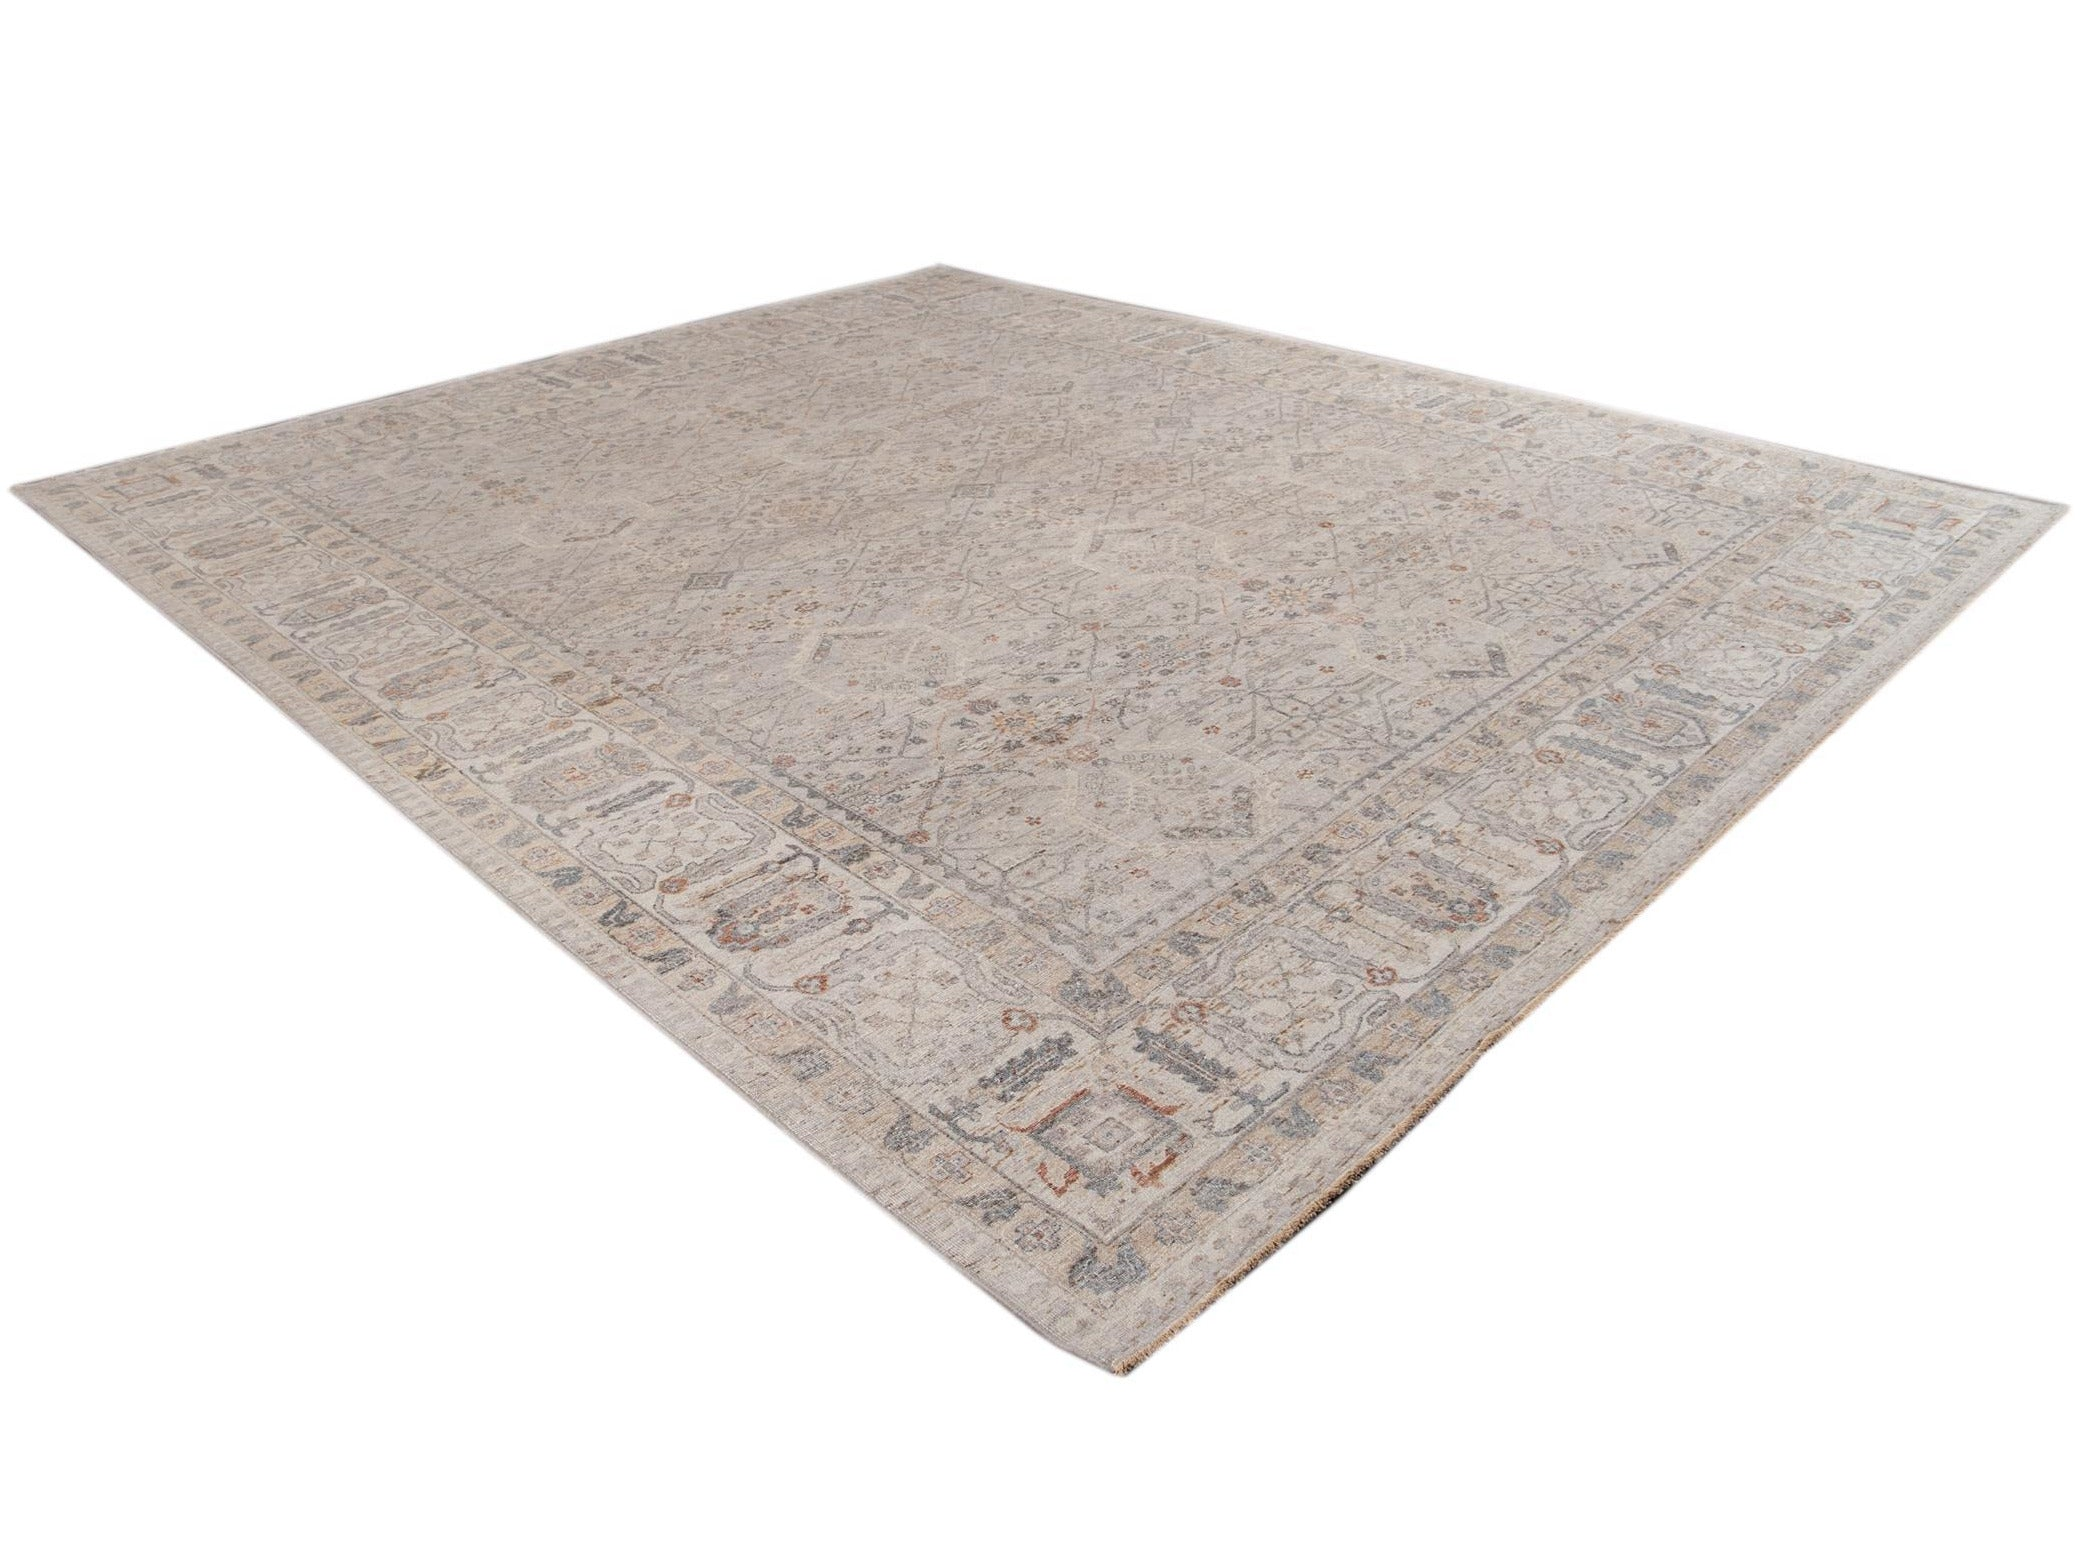 21st Century Contemporary Indian Wool Rug, 12 X 14